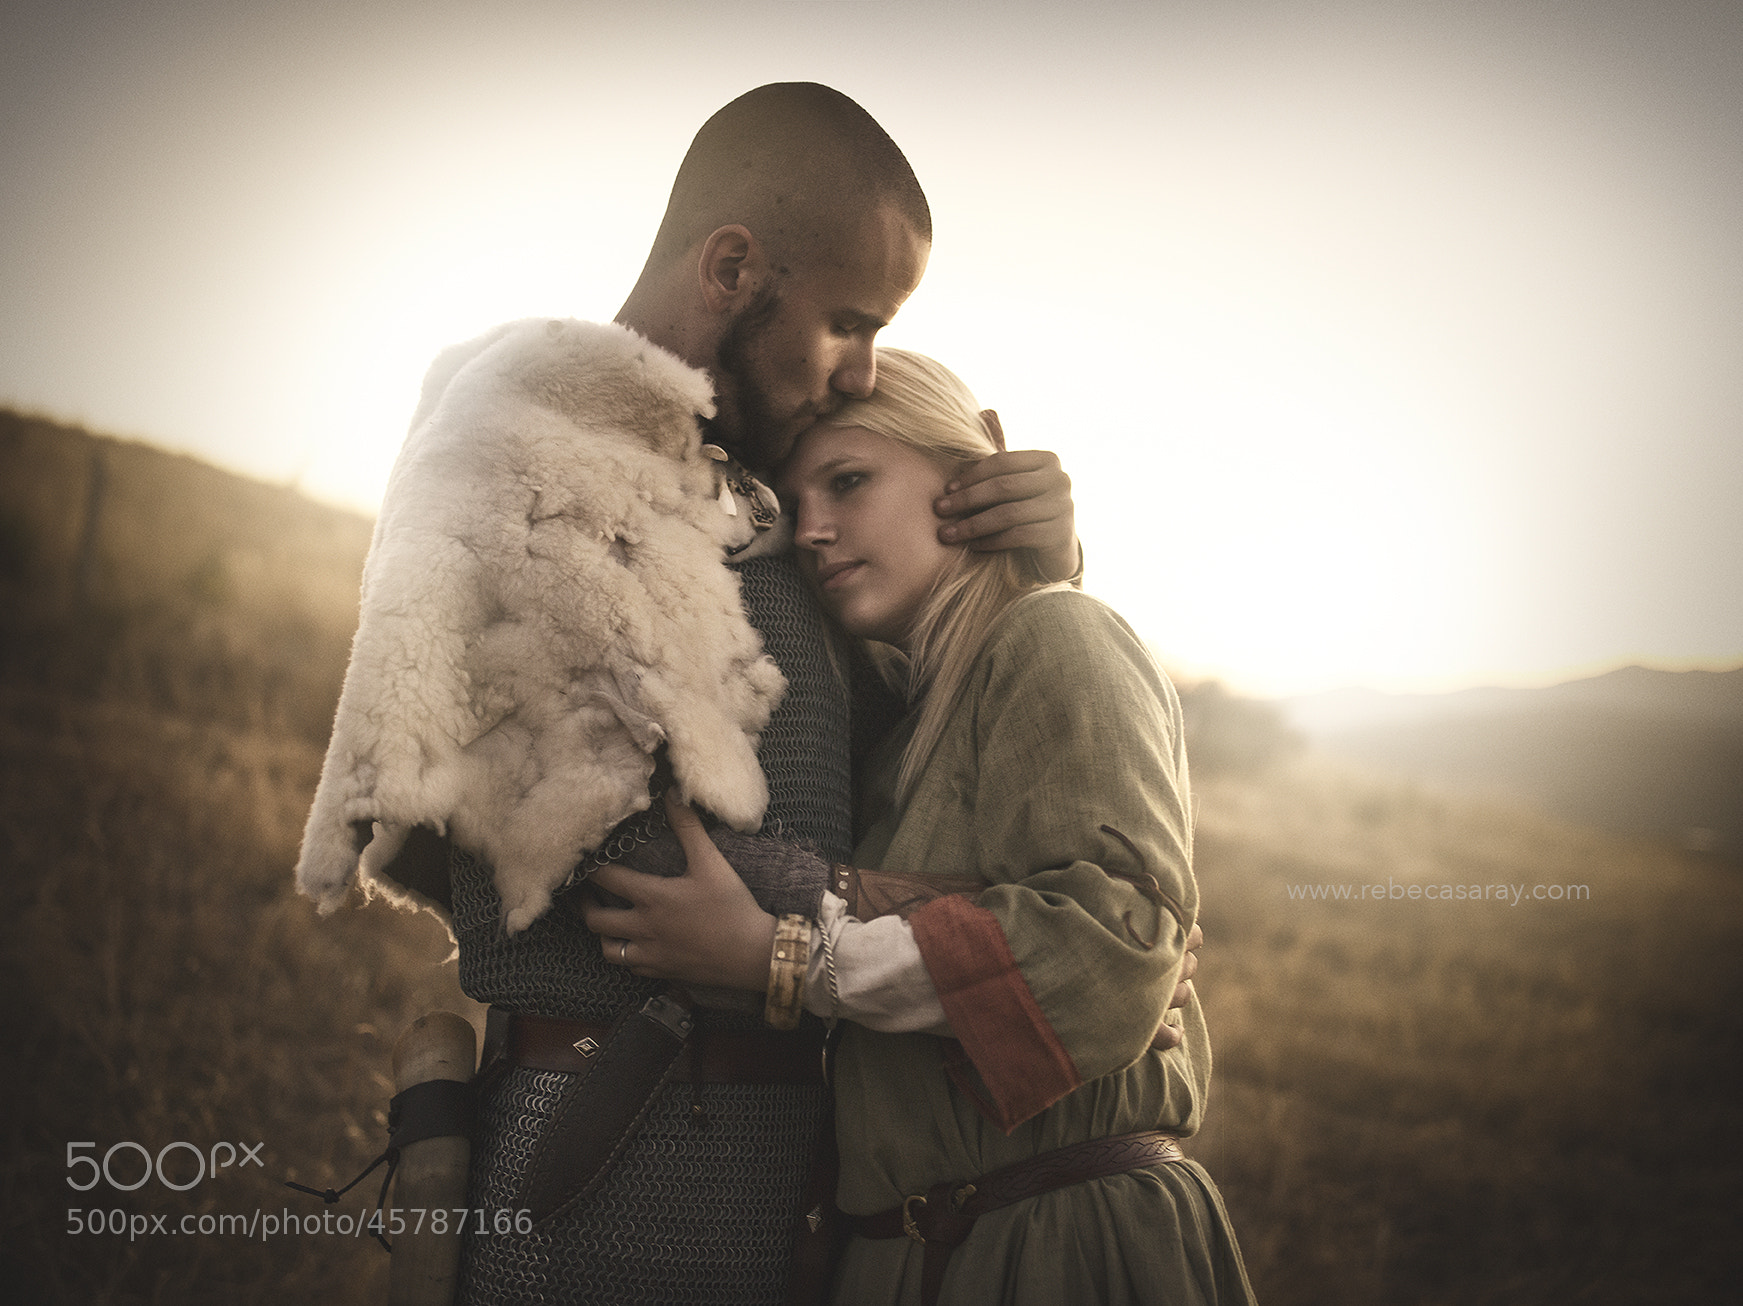 Photograph Eternal love by Rebeca  Saray on 500px